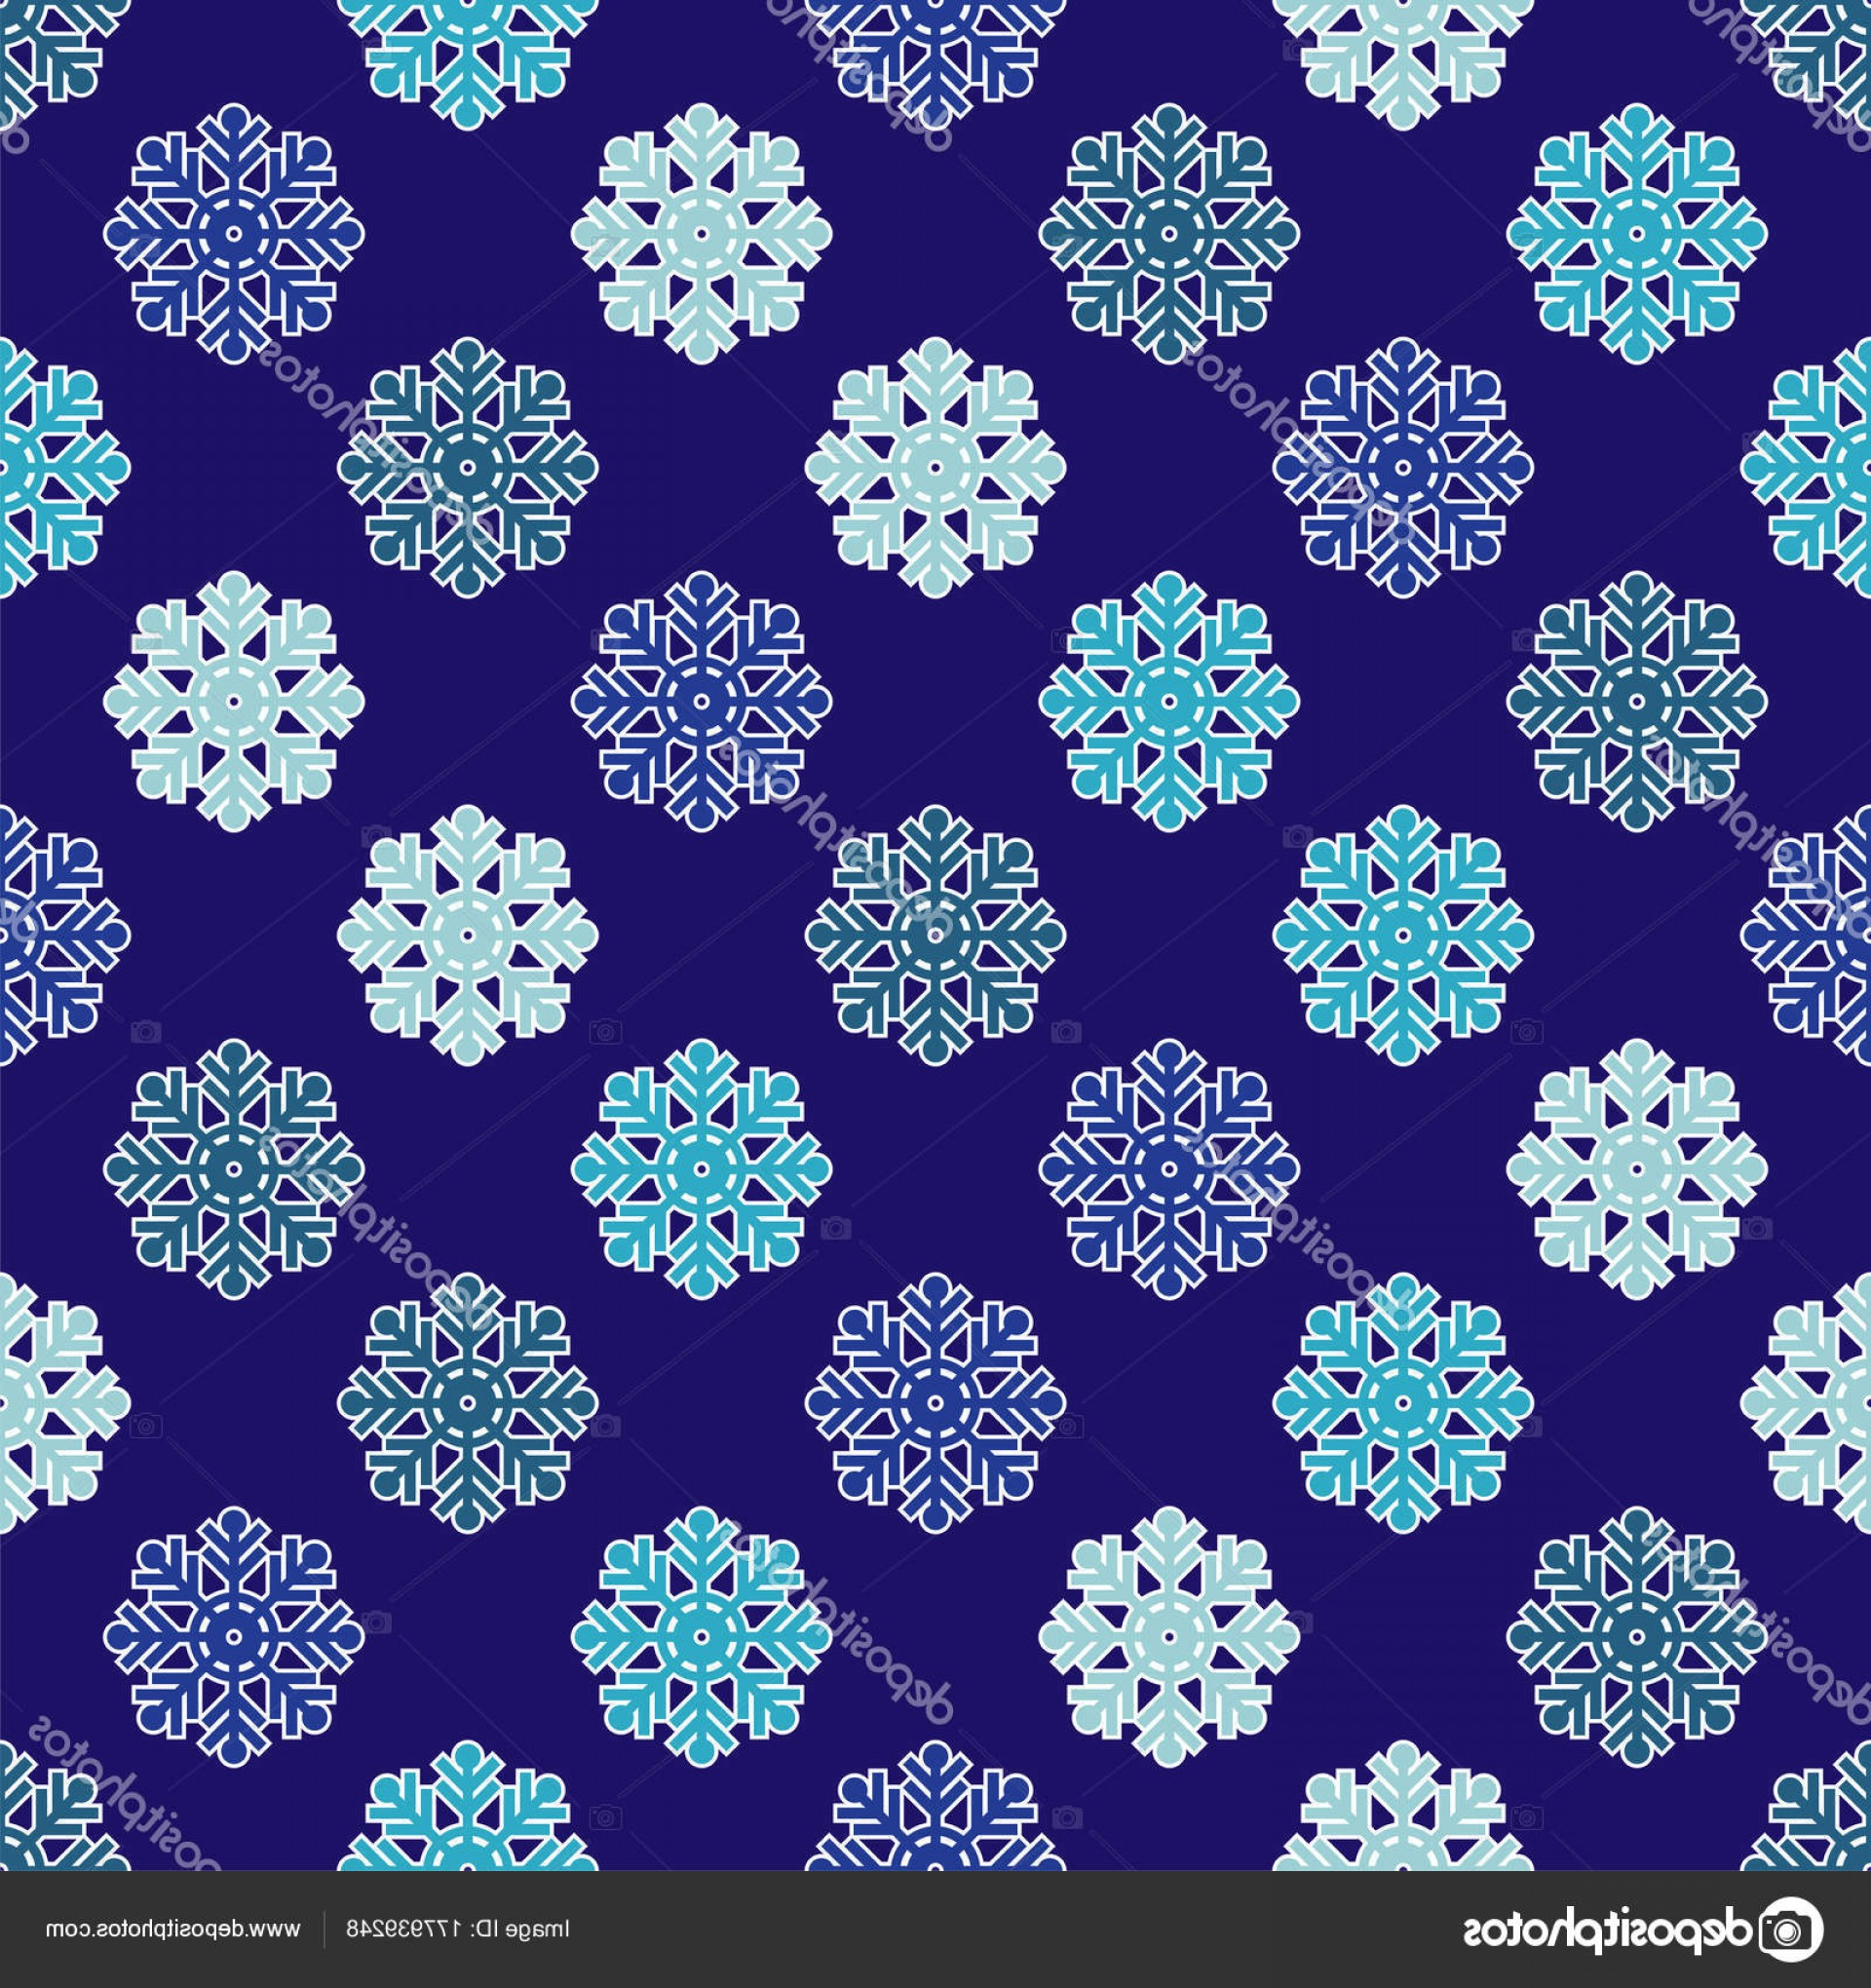 Rapport Vector: Stock Illustration Seamless Vector Background Doodle Snowflakes